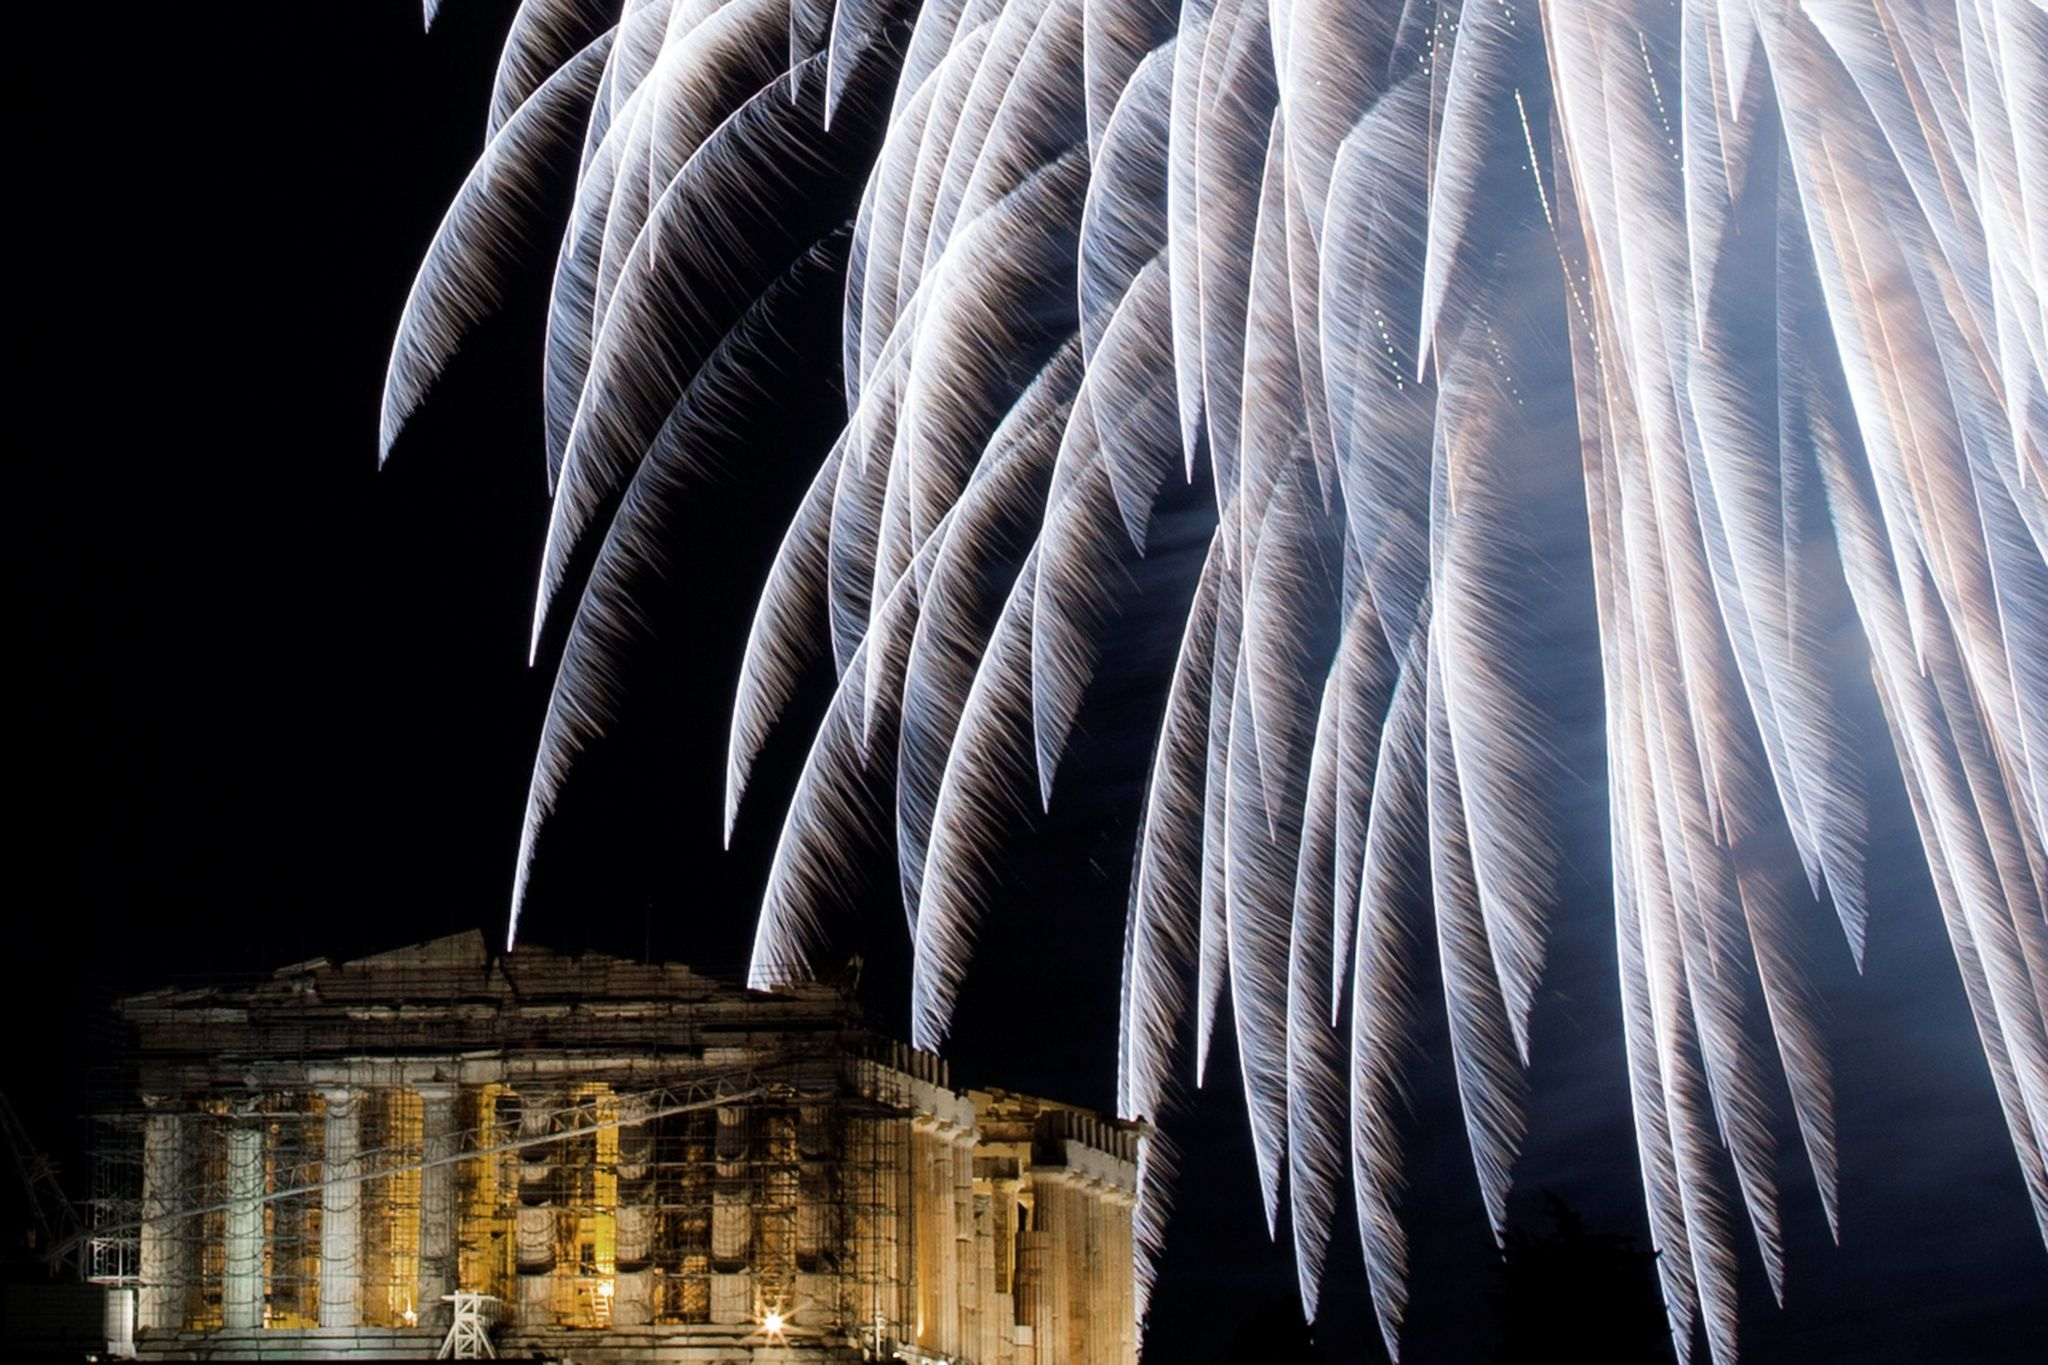 Fireworks explode over the ancient Parthenon temple atop Acropolis hill